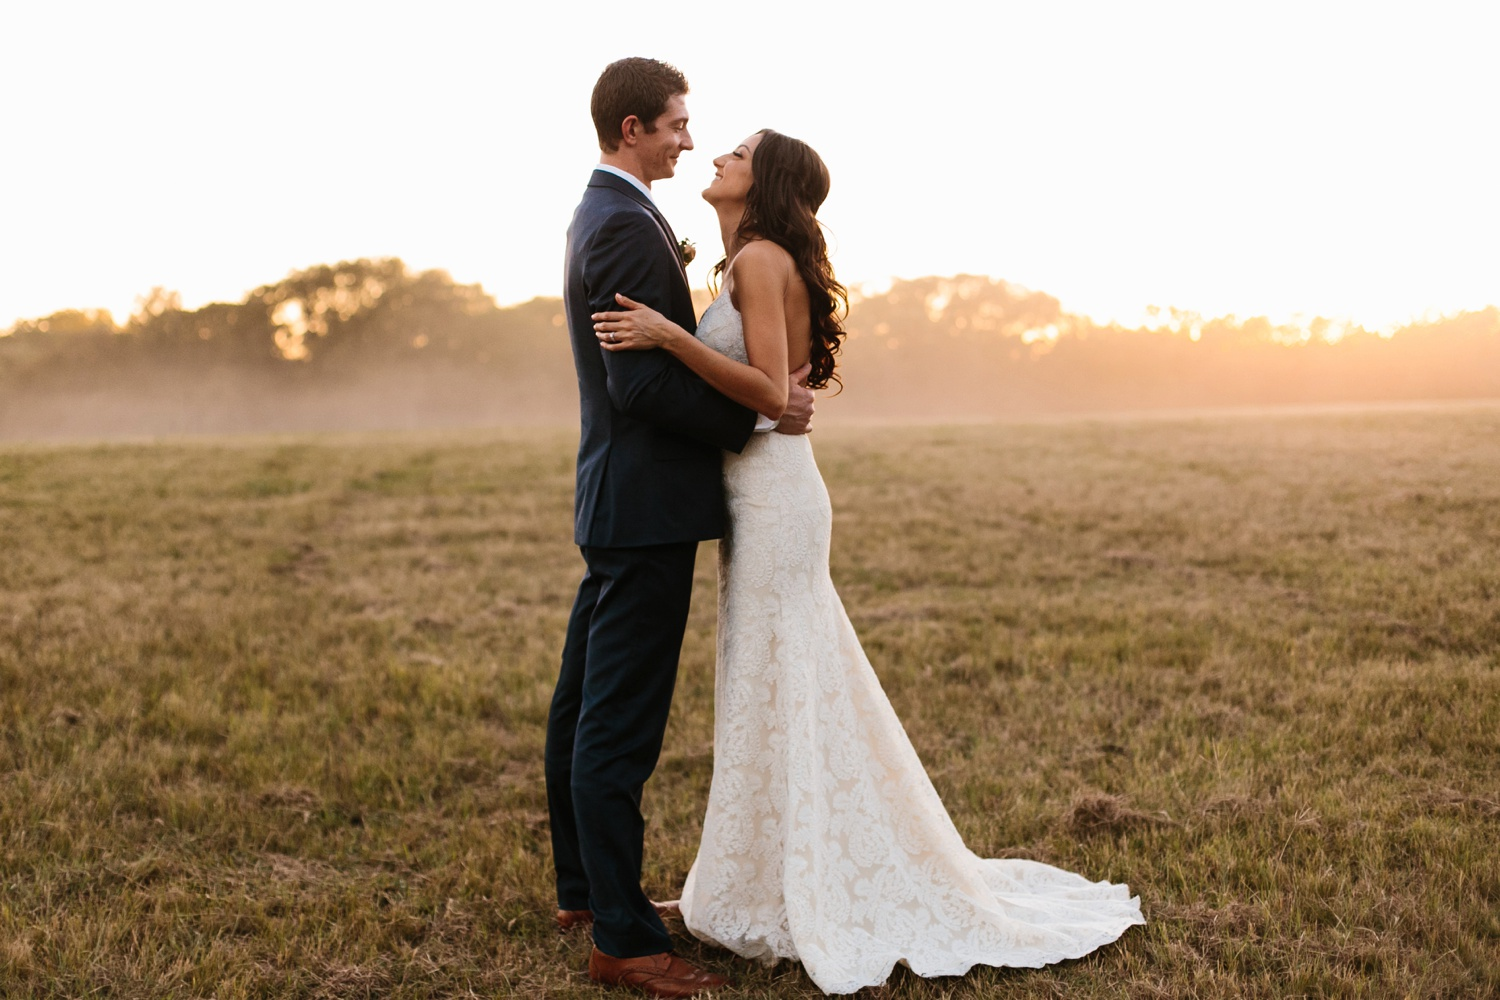 Erica + Henry | a bohemian inspired wedding at Chandlers Gardens in Salina, TX by North Texas Wedding Photographer Rachel Meagan Photography 108